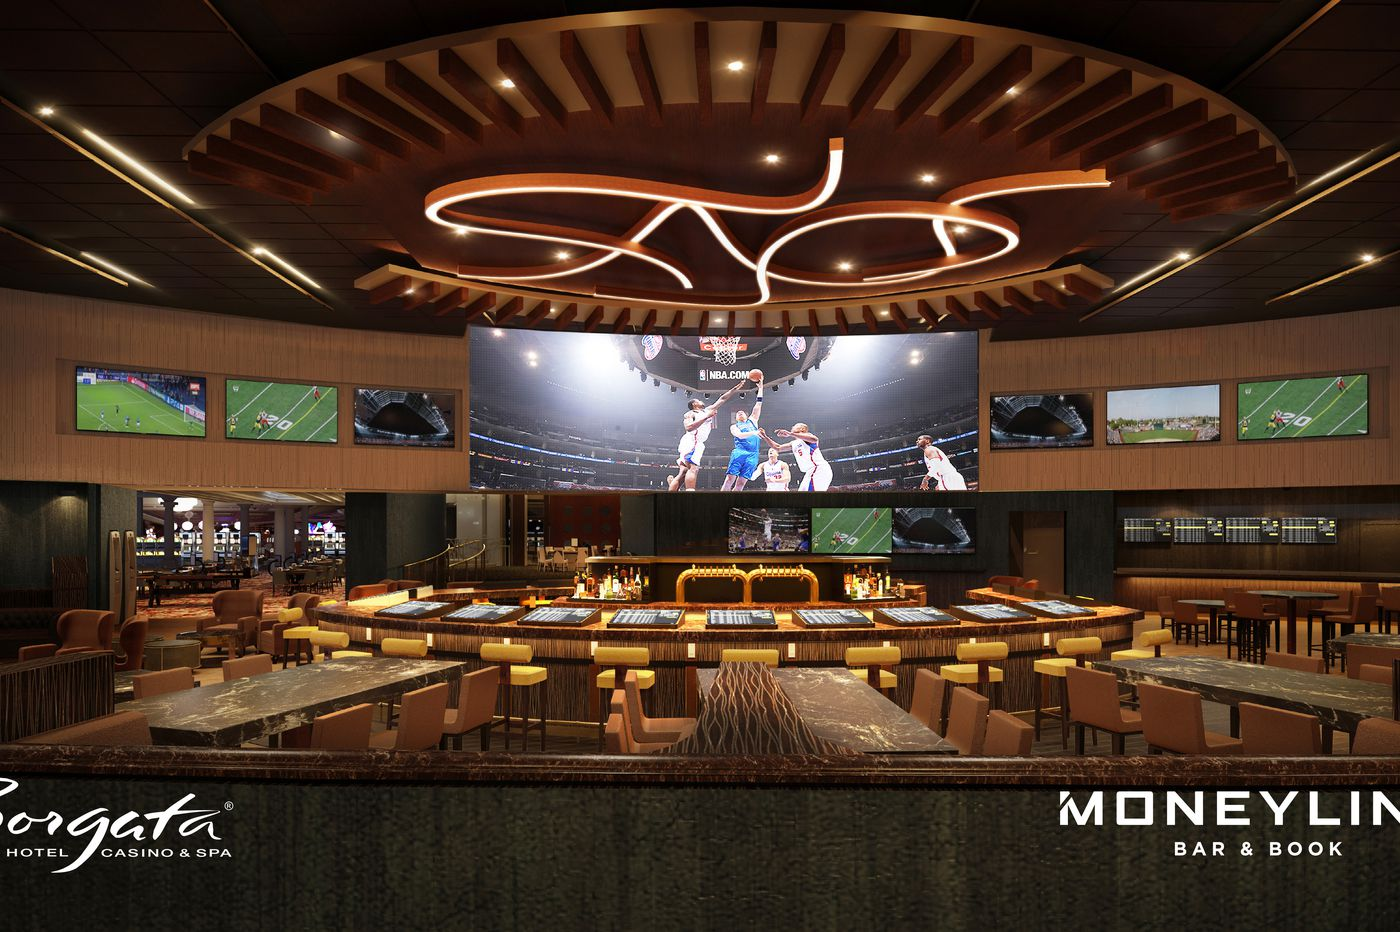 Borgata announces date for opening of renovated sportsbook